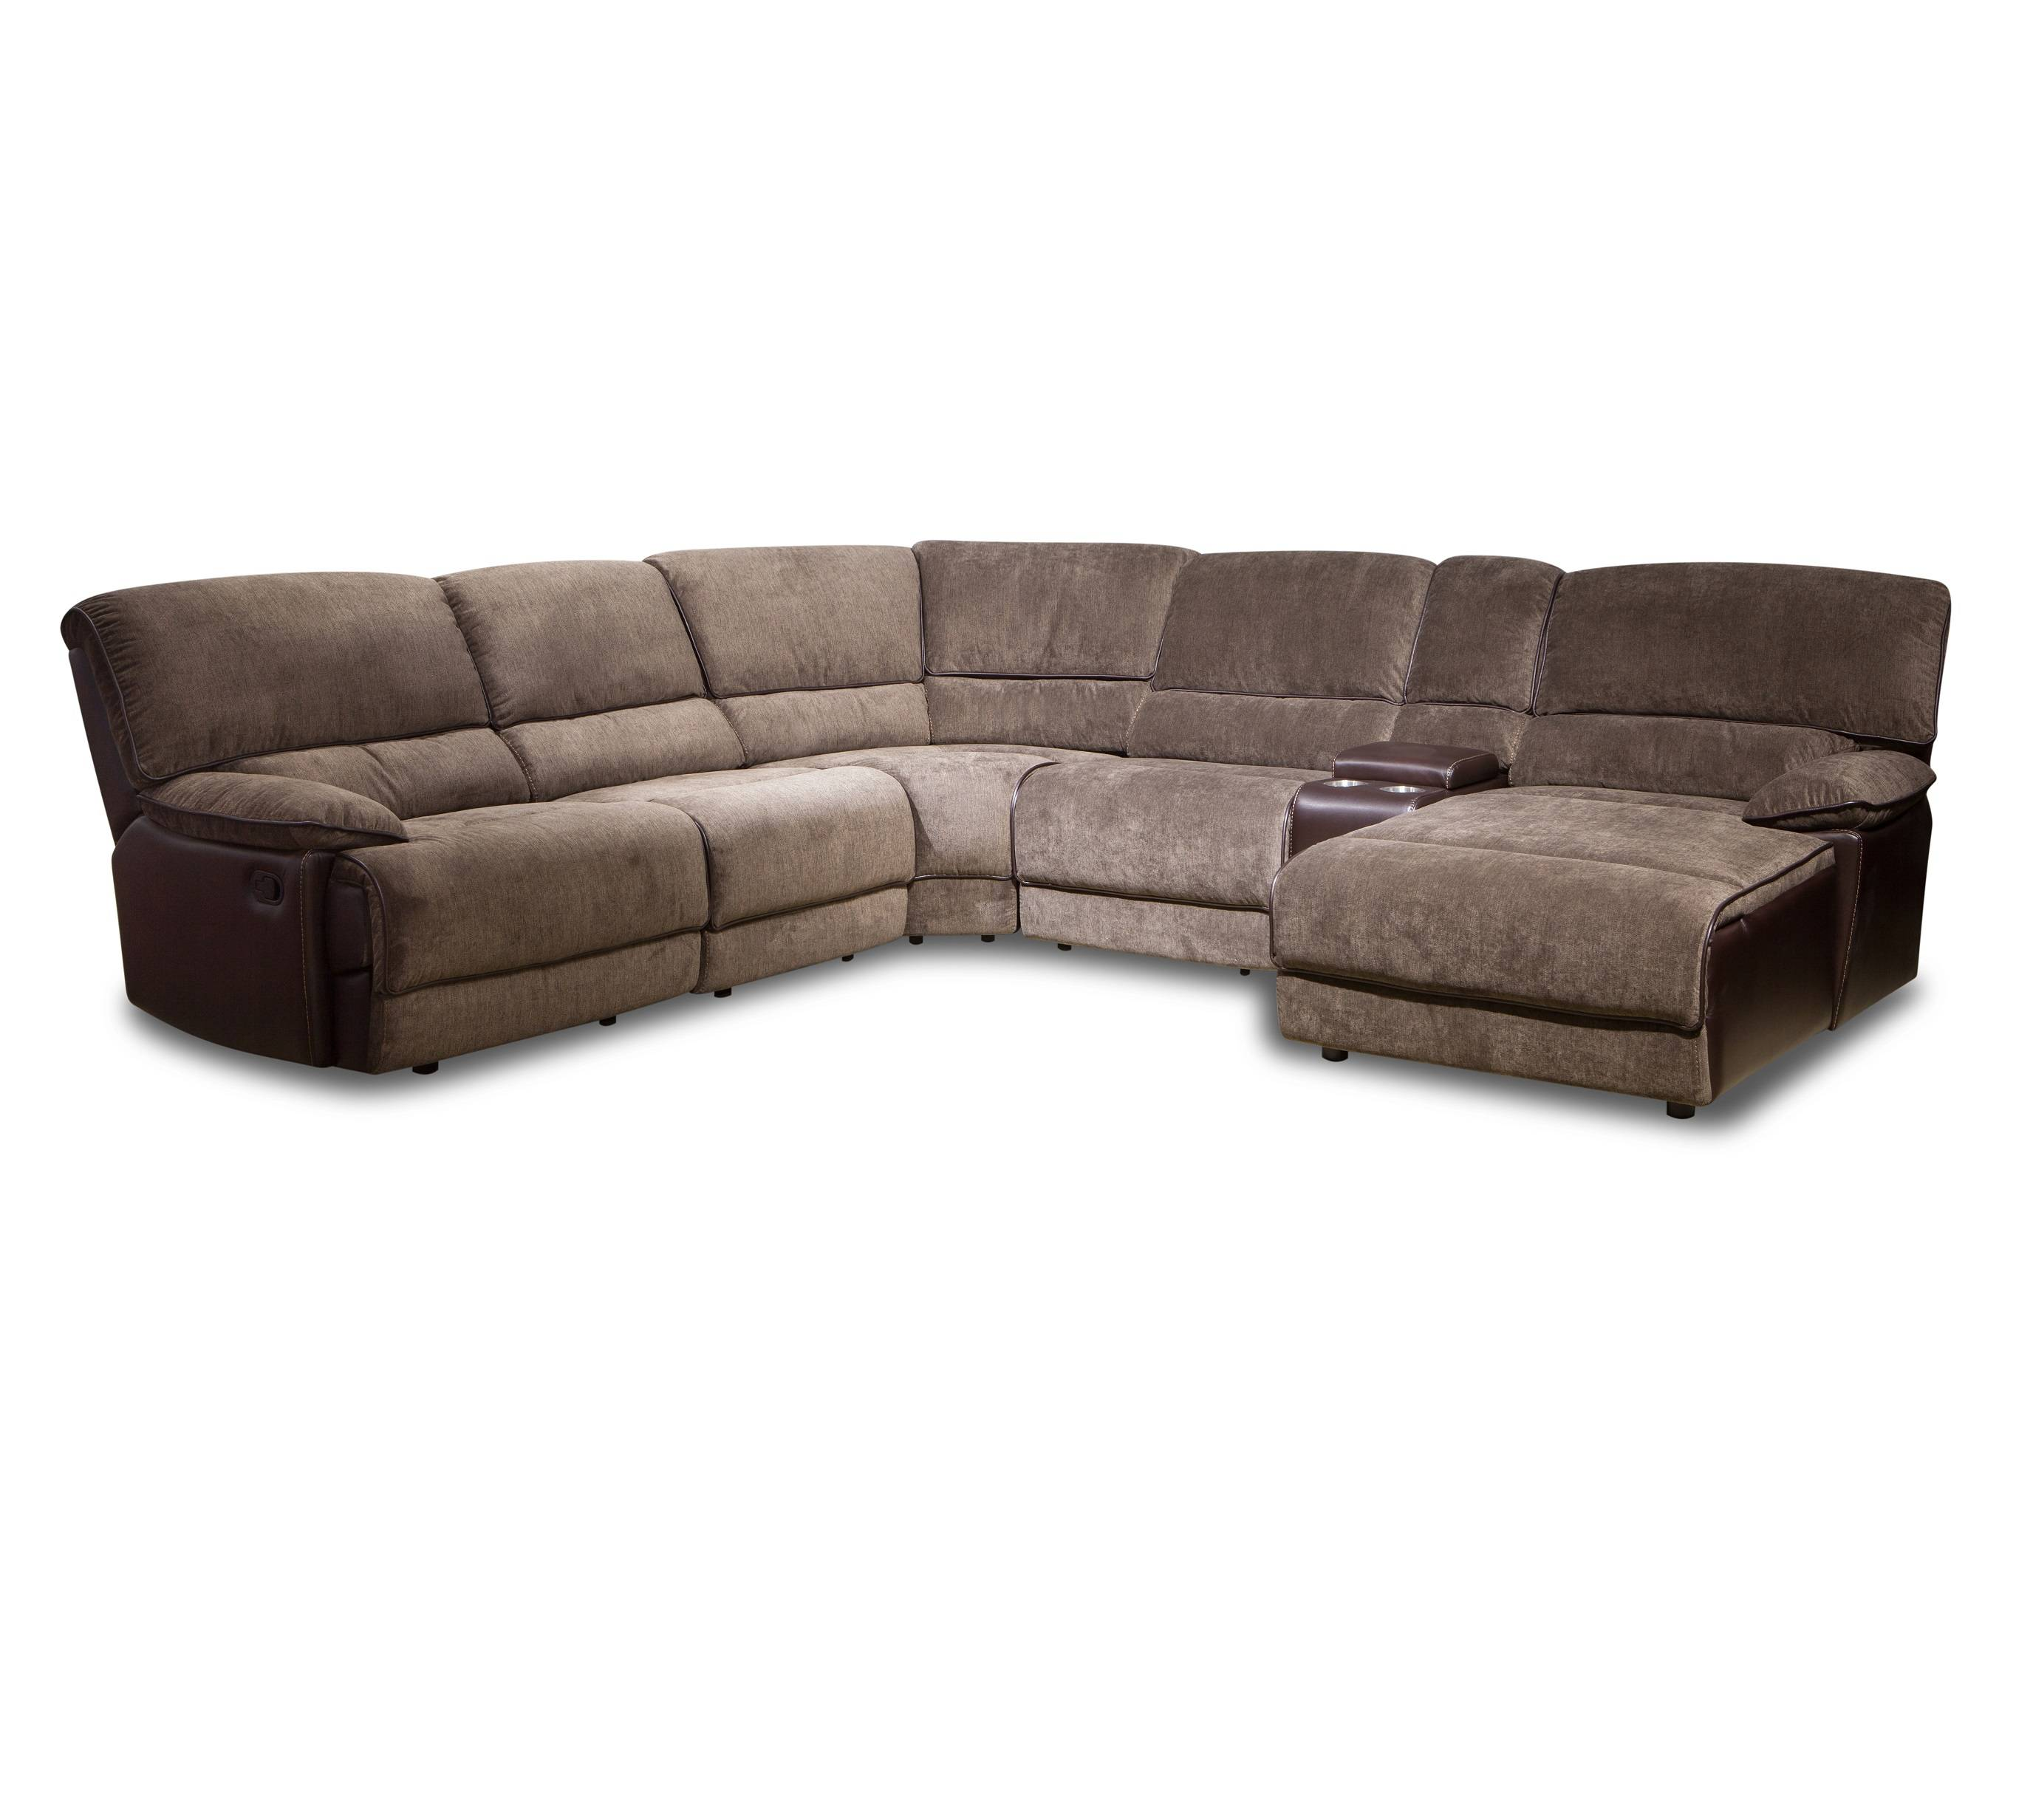 Luxury living room furniture sofa fabric sectional sofa with chaise